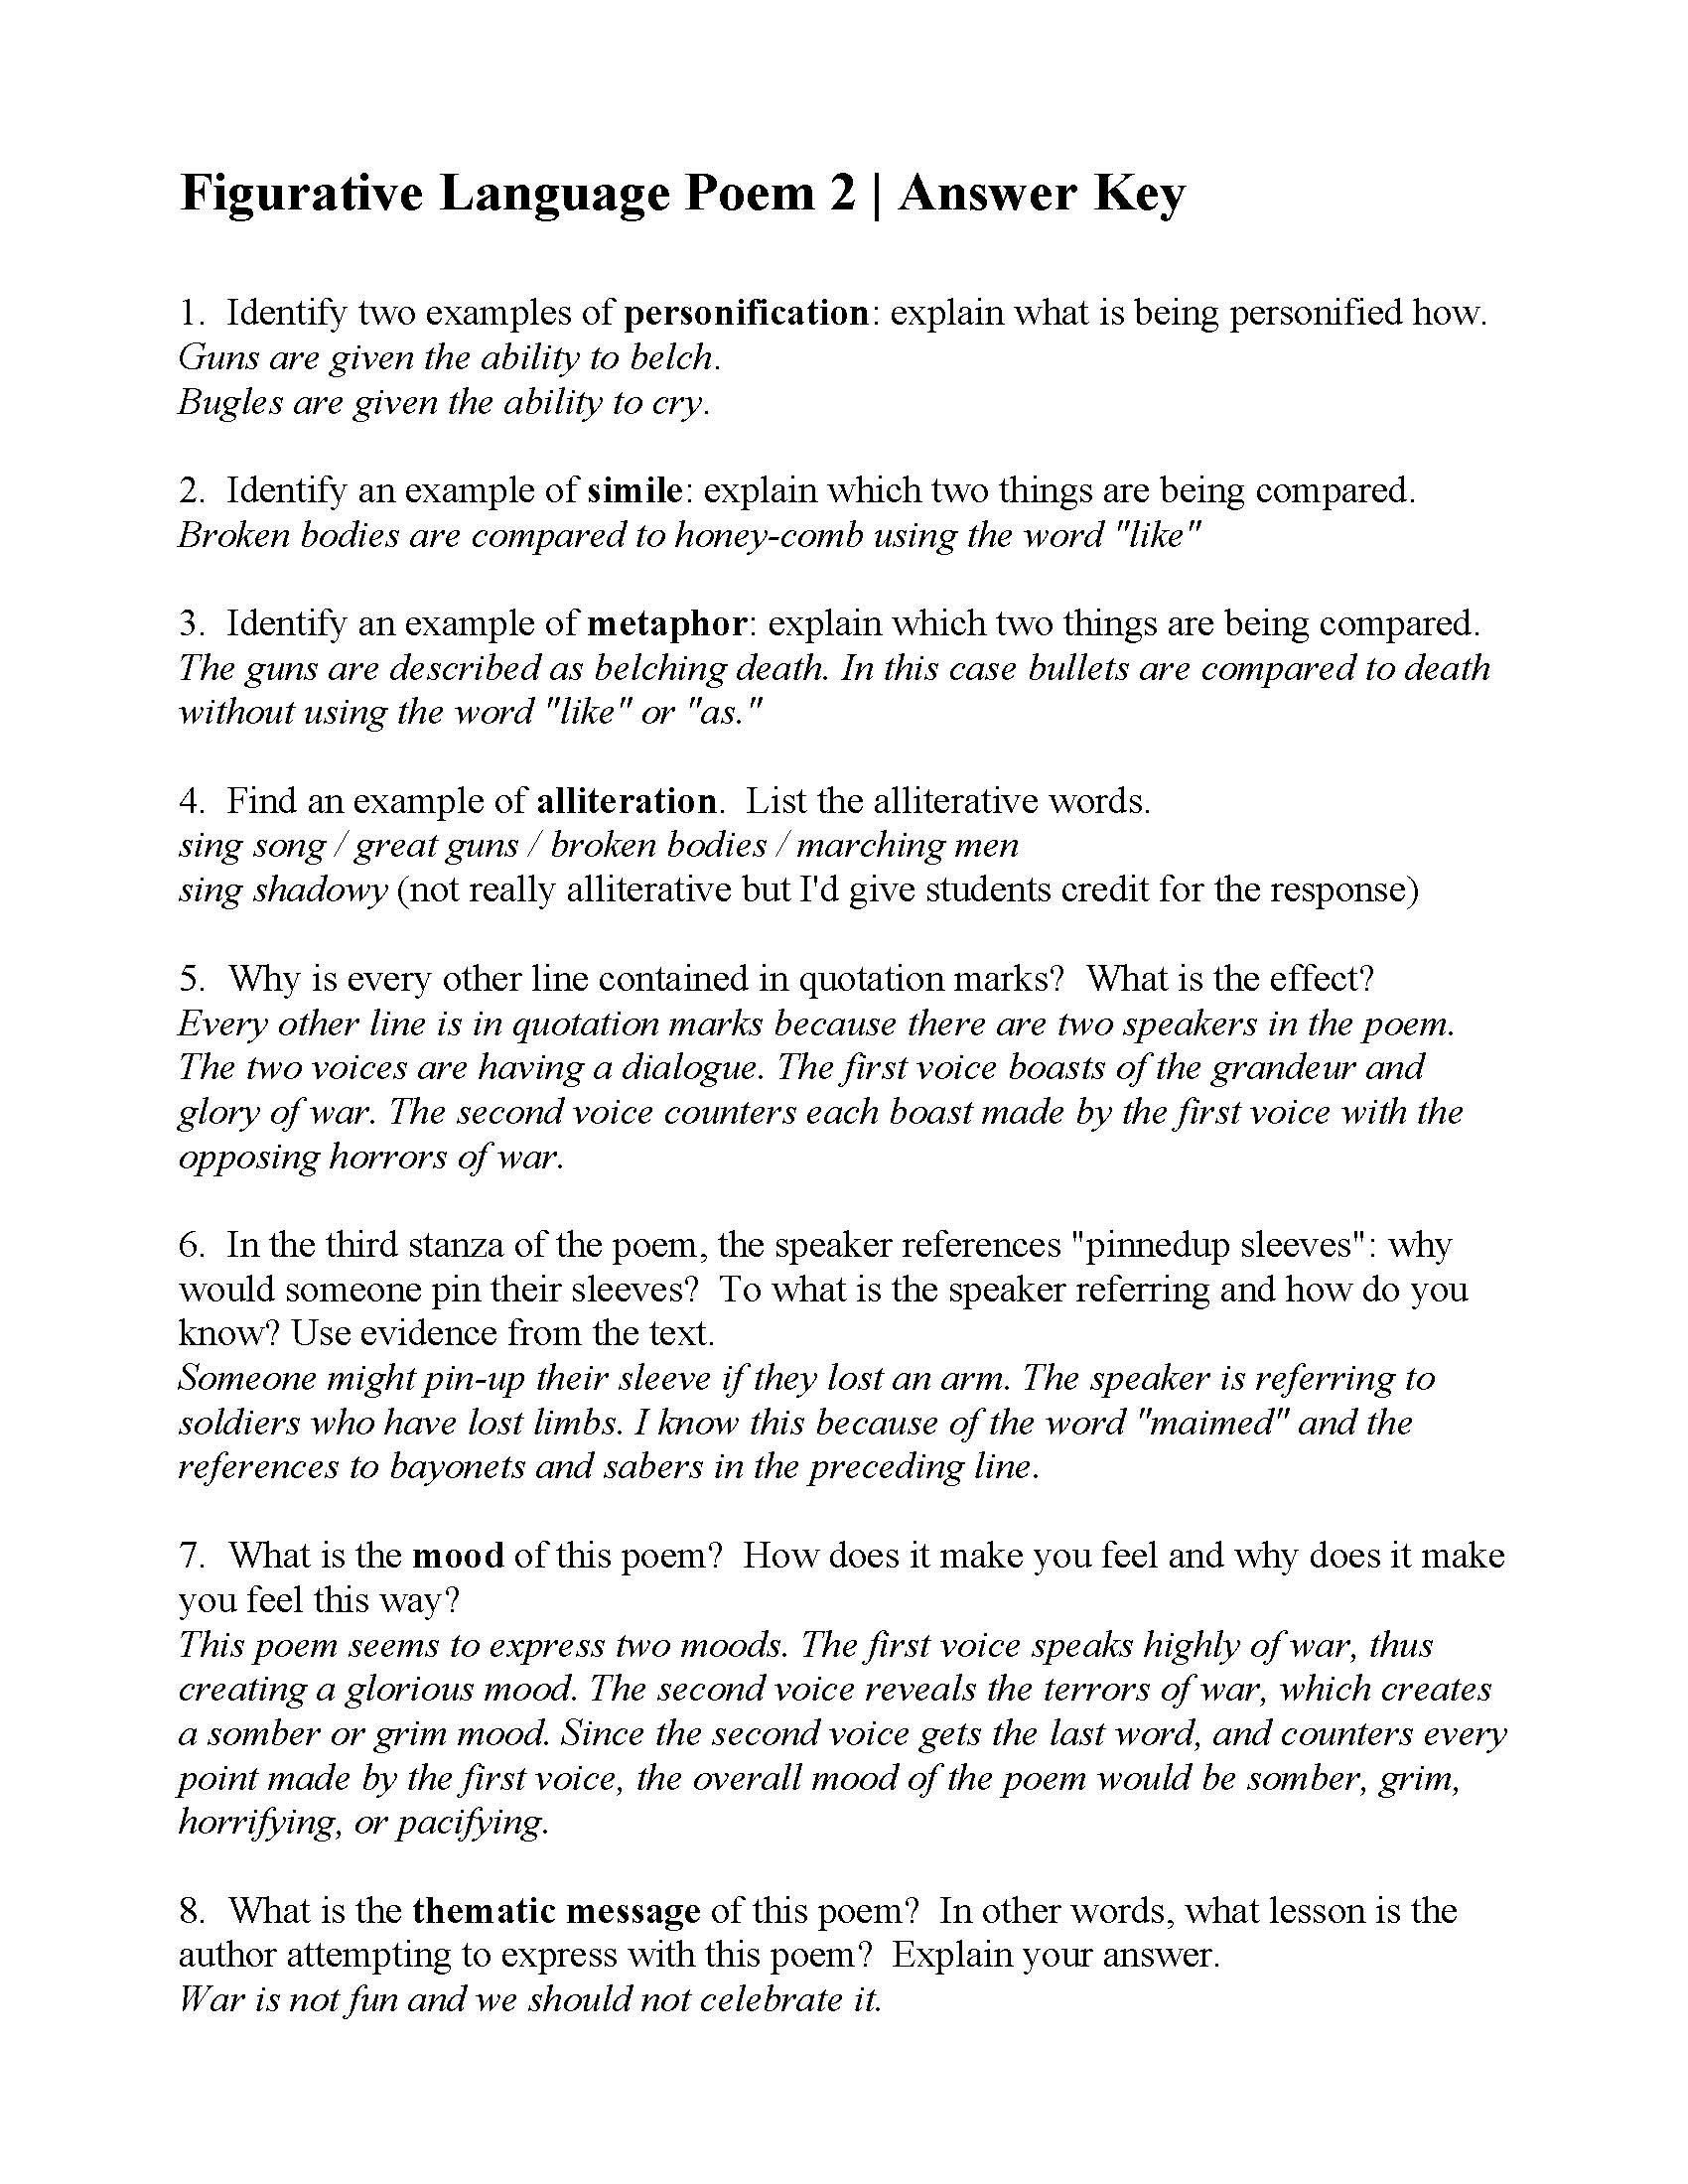 Poetry Worksheet High School Figurative Language Poem 2 I Sing The Battle By Harry In 2020 Figurative Language Poems Figurative Language Worksheet Language Worksheets